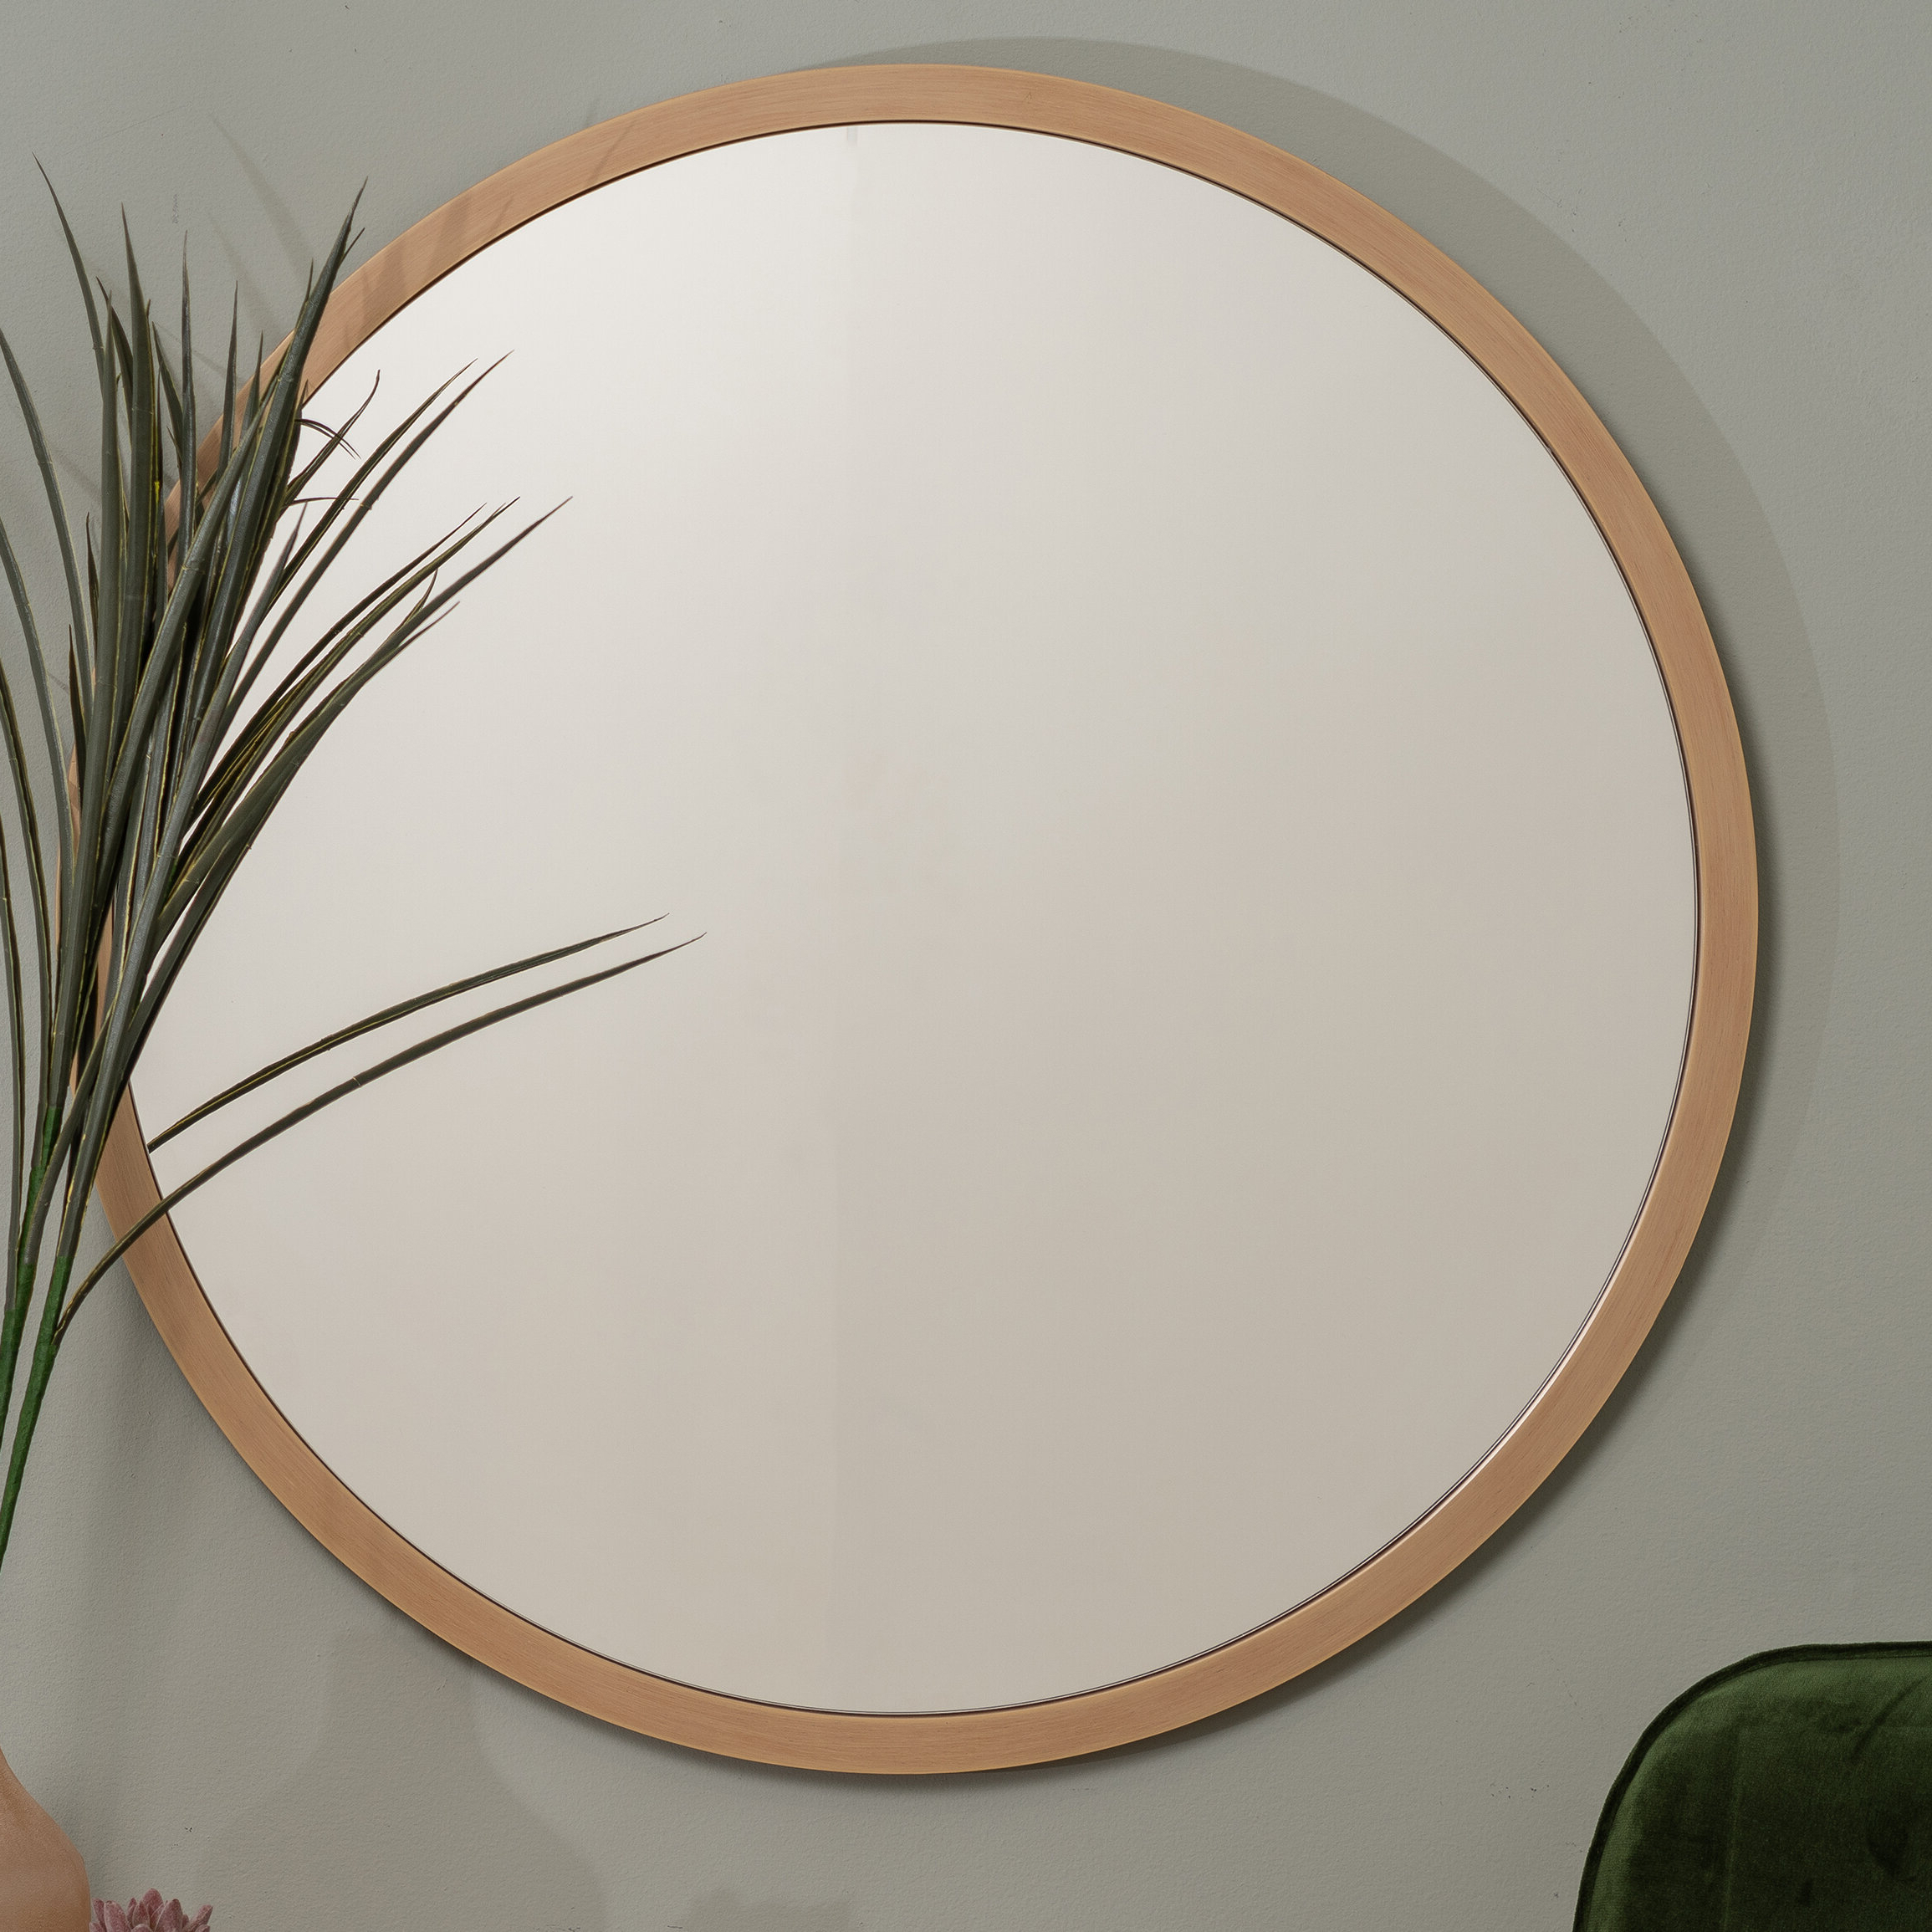 2019 Swansea Scandinavian Round Wall Mirror With Regard To Round Wall Mirrors (View 13 of 20)